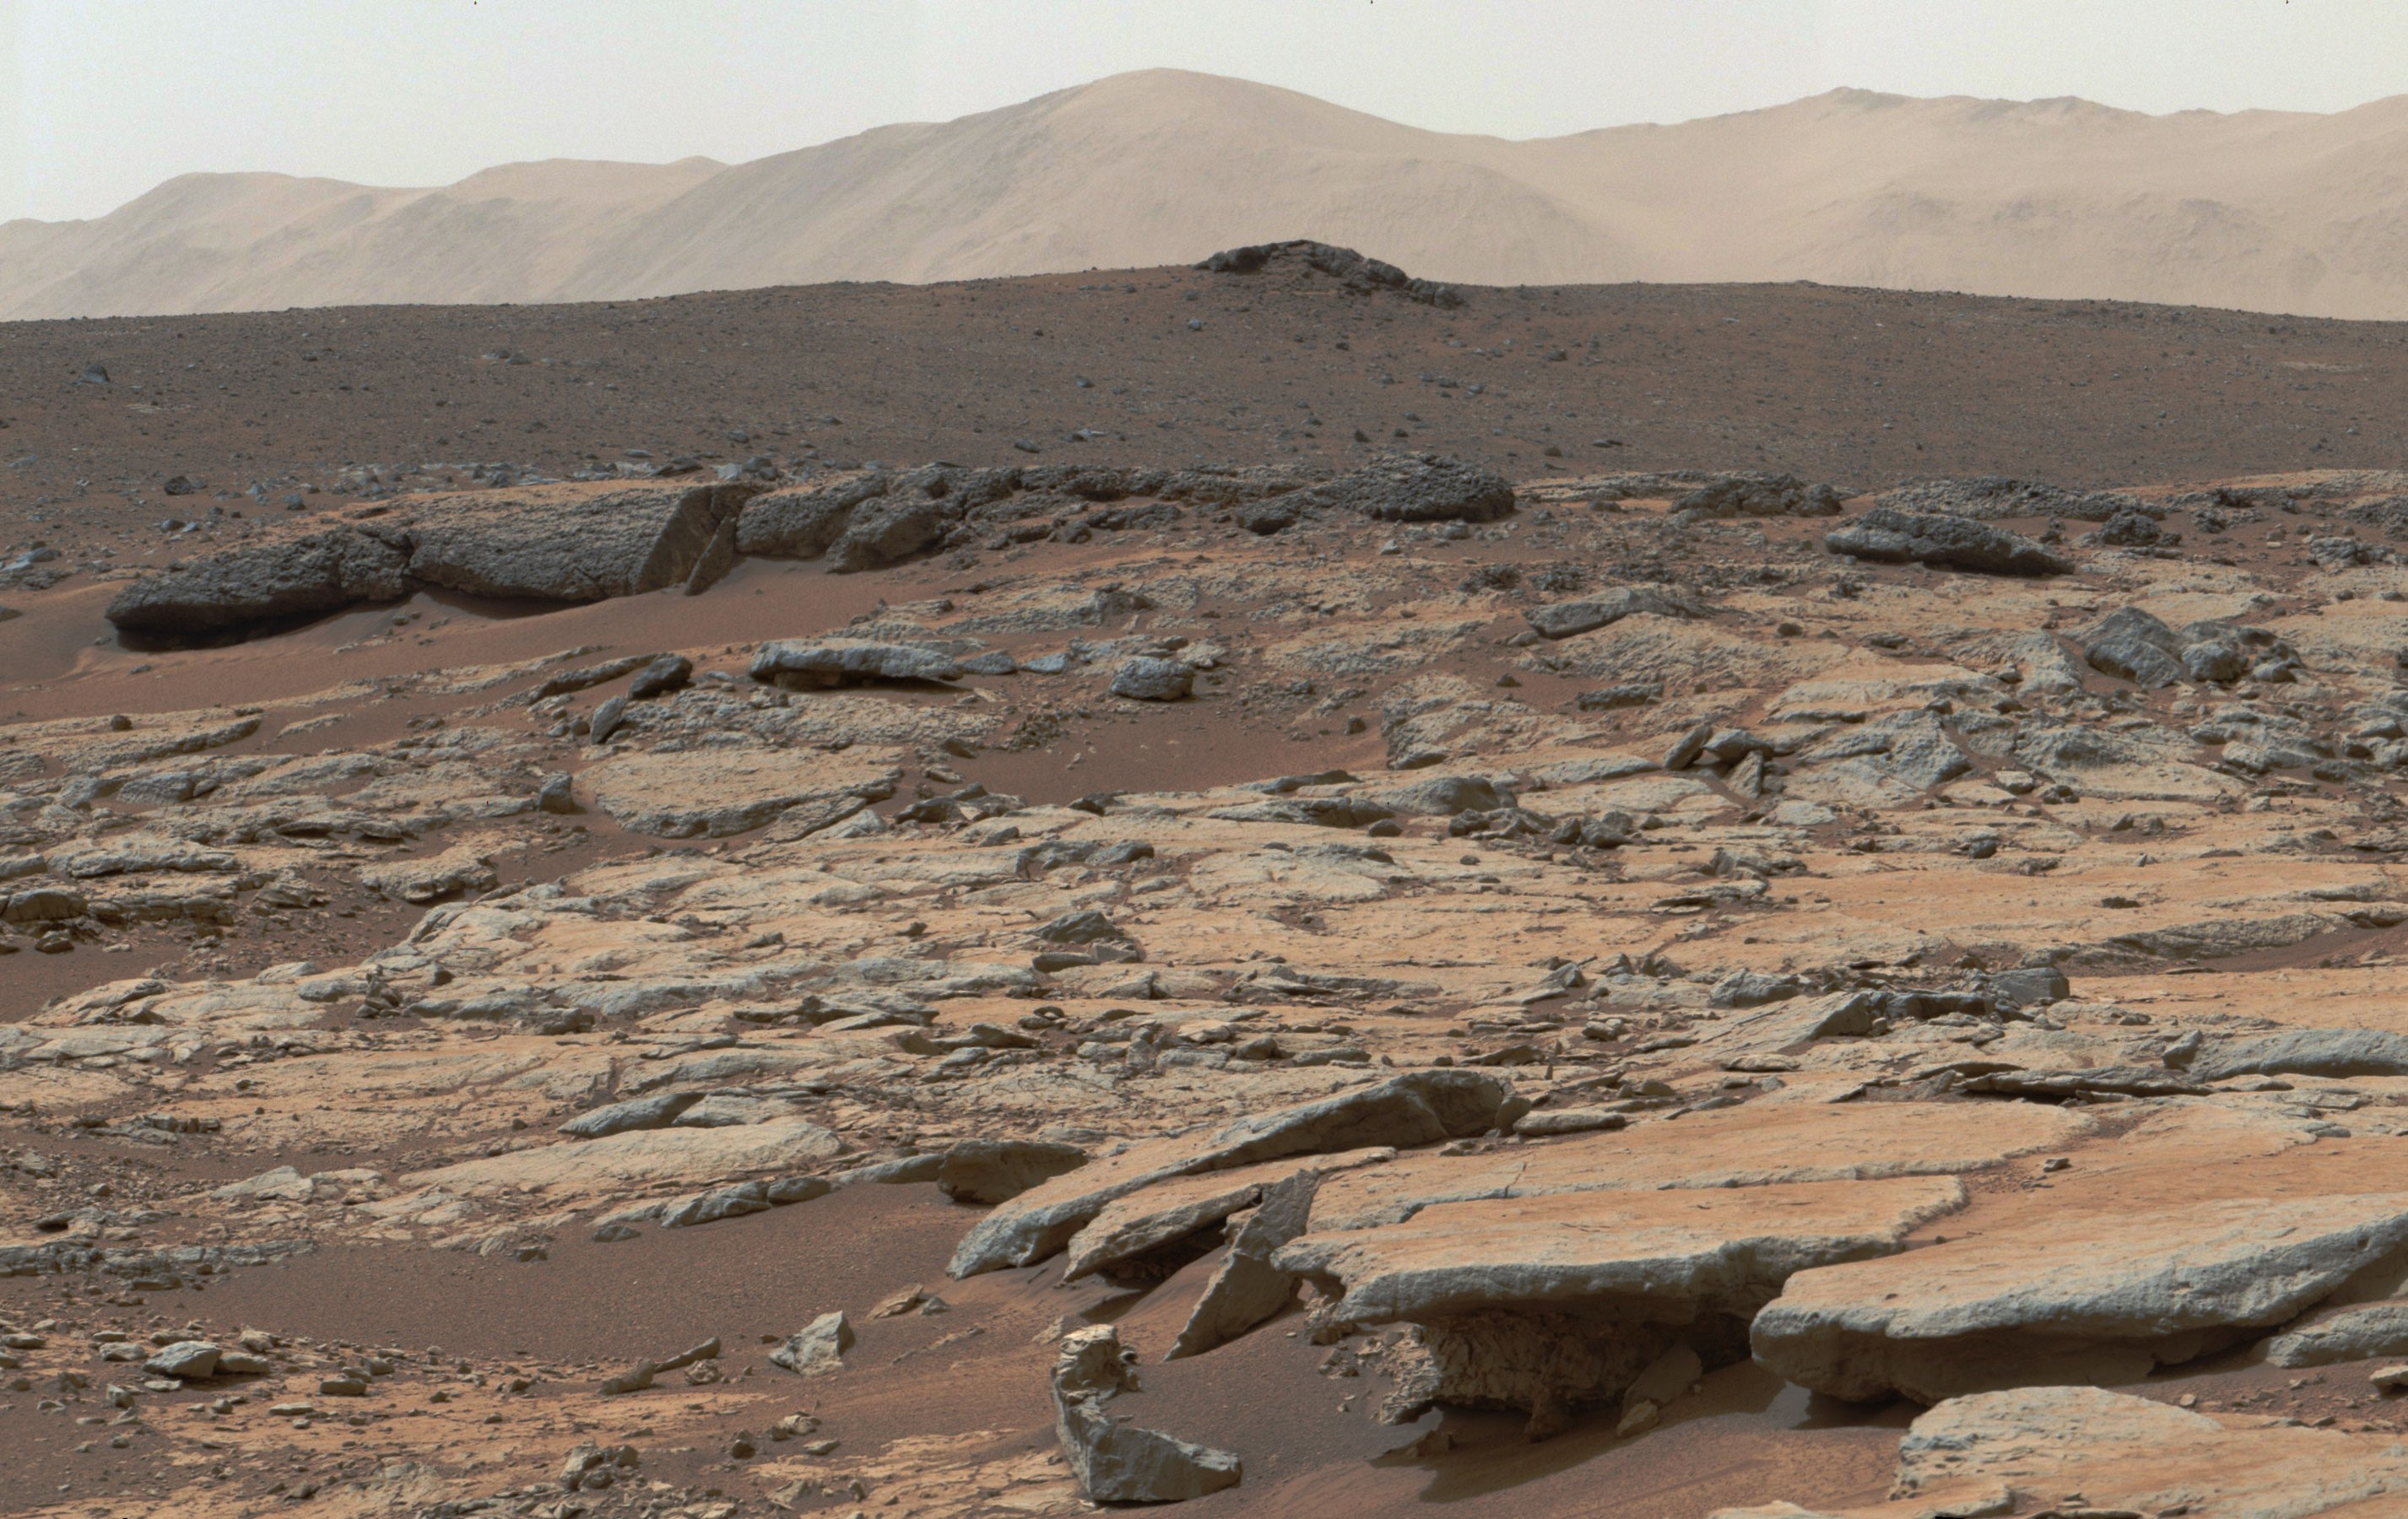 Can microscopic fossils be found on Mars by 2020 mission?